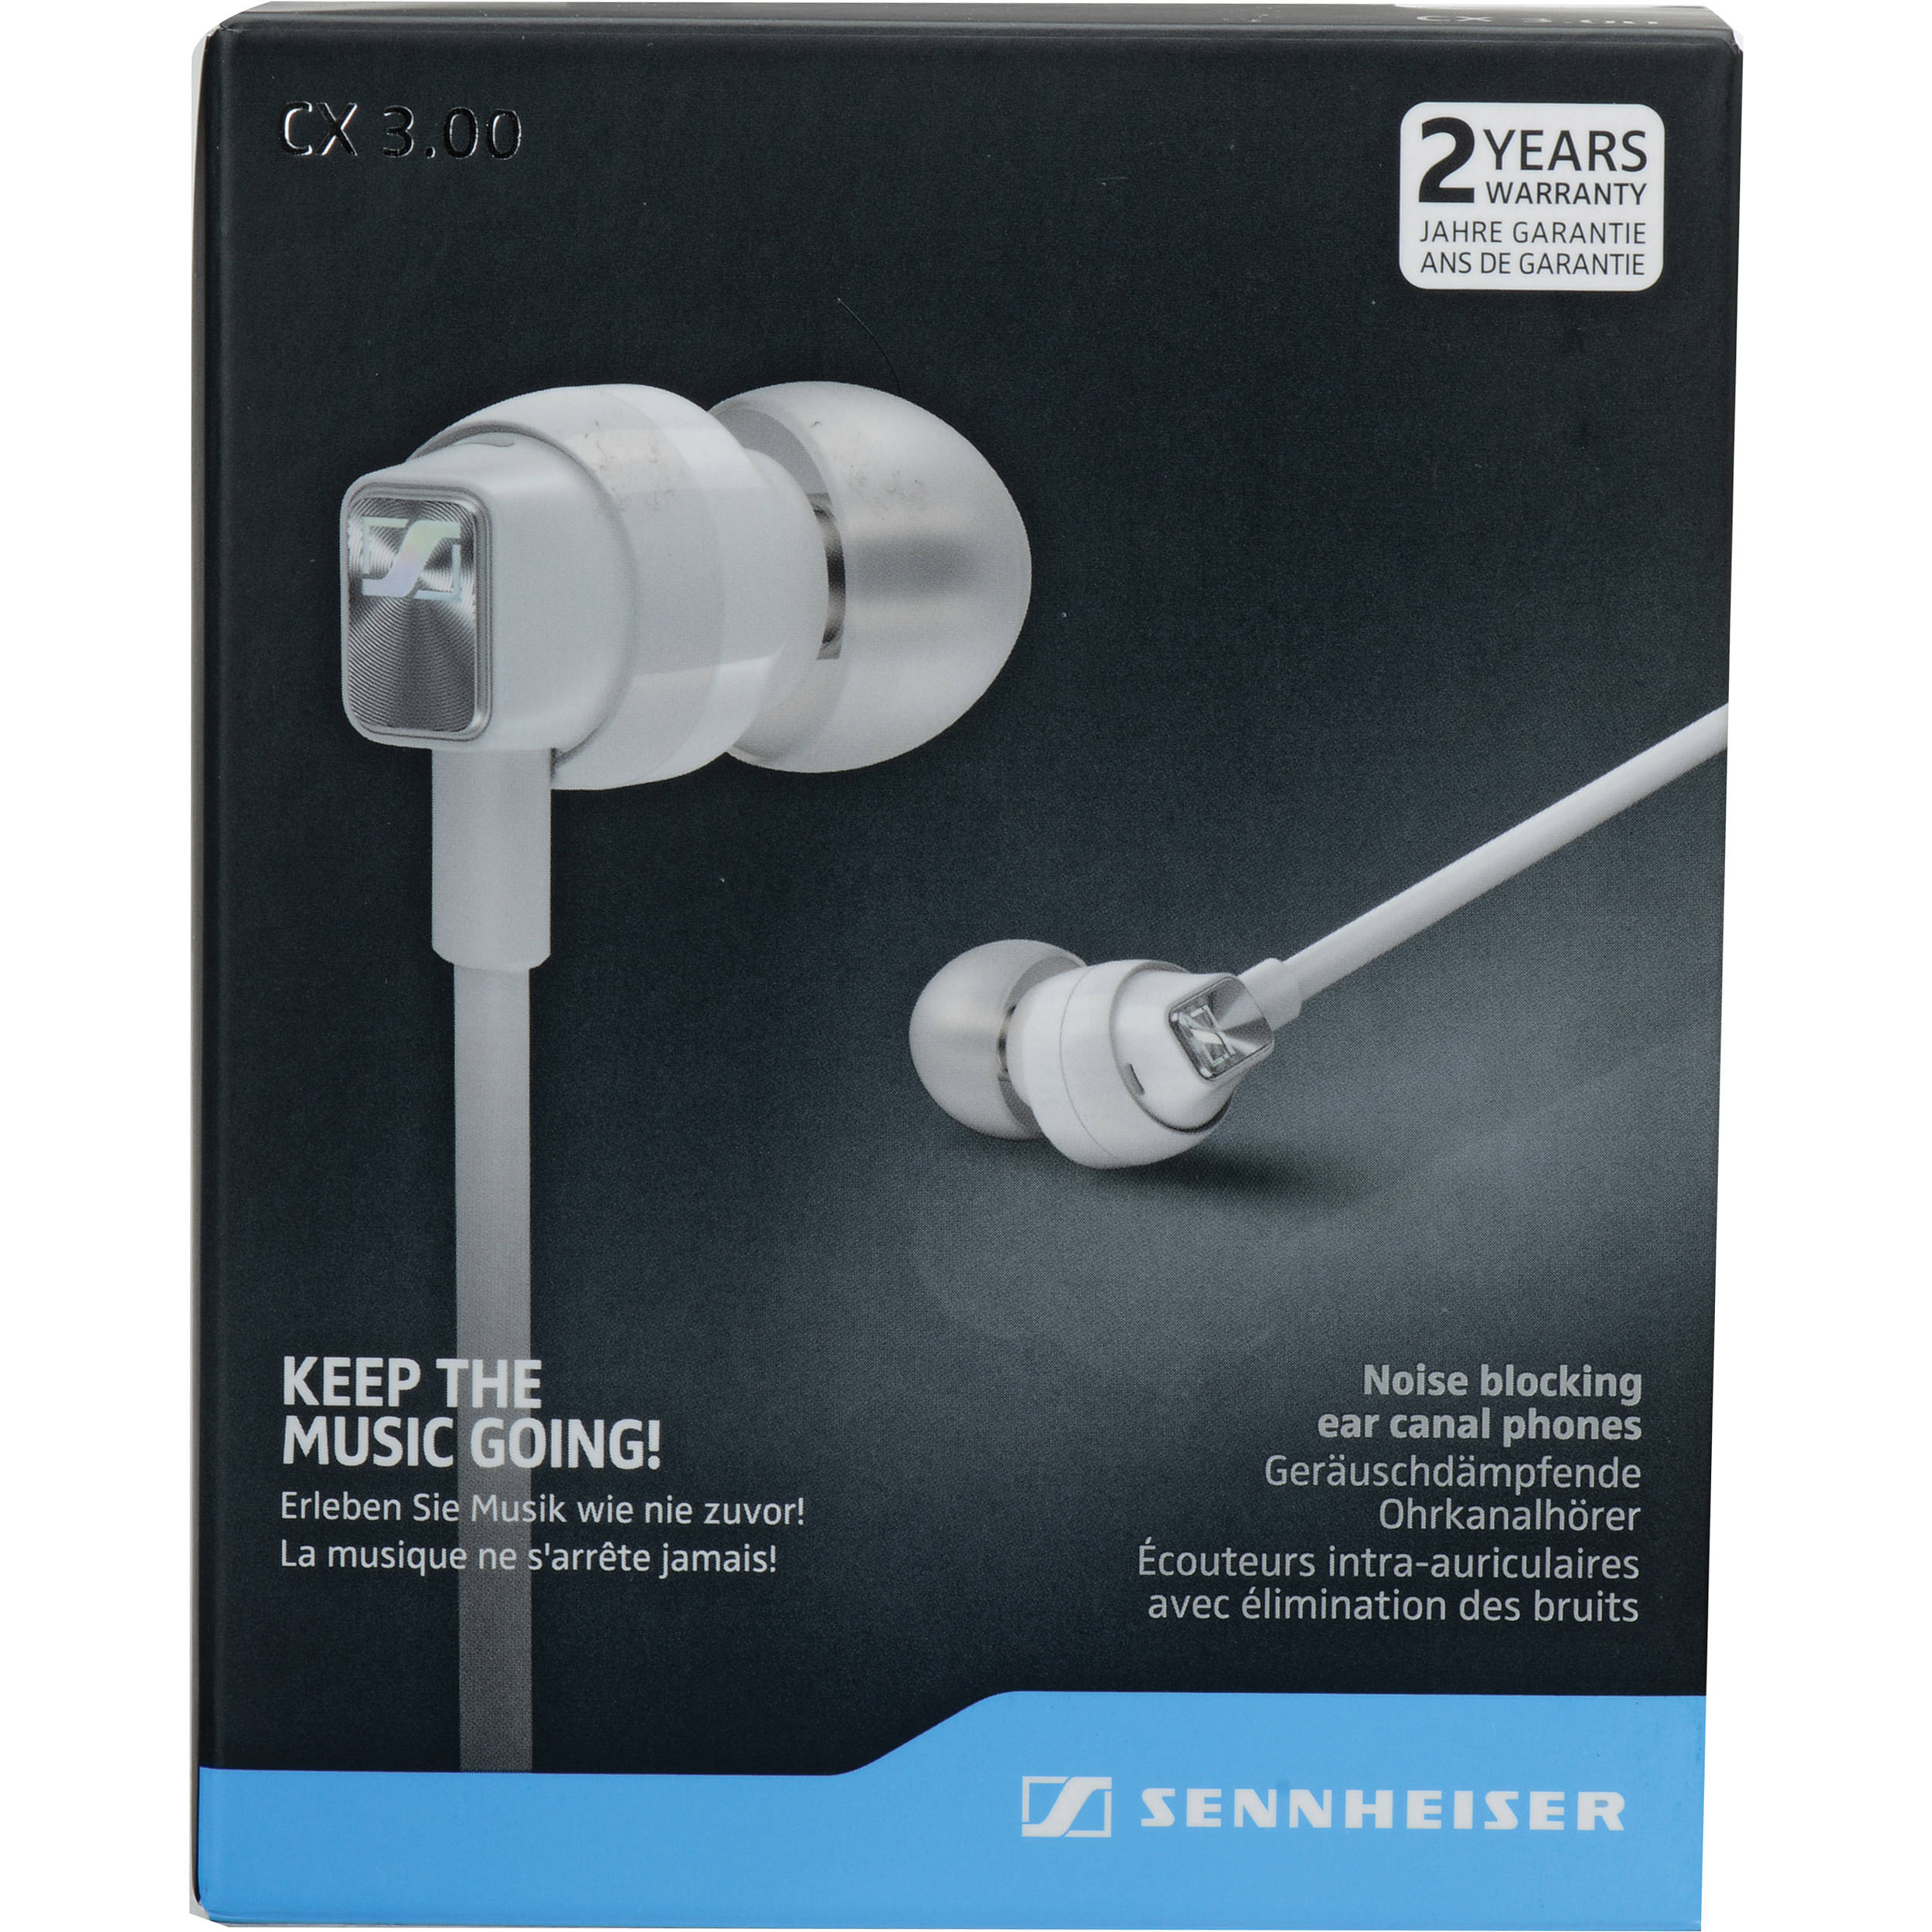 sennheiser cx 3 00 earphones white 506246 b h photo video rh bhphotovideo com sennheiser t60 user manual sennheiser user manuals